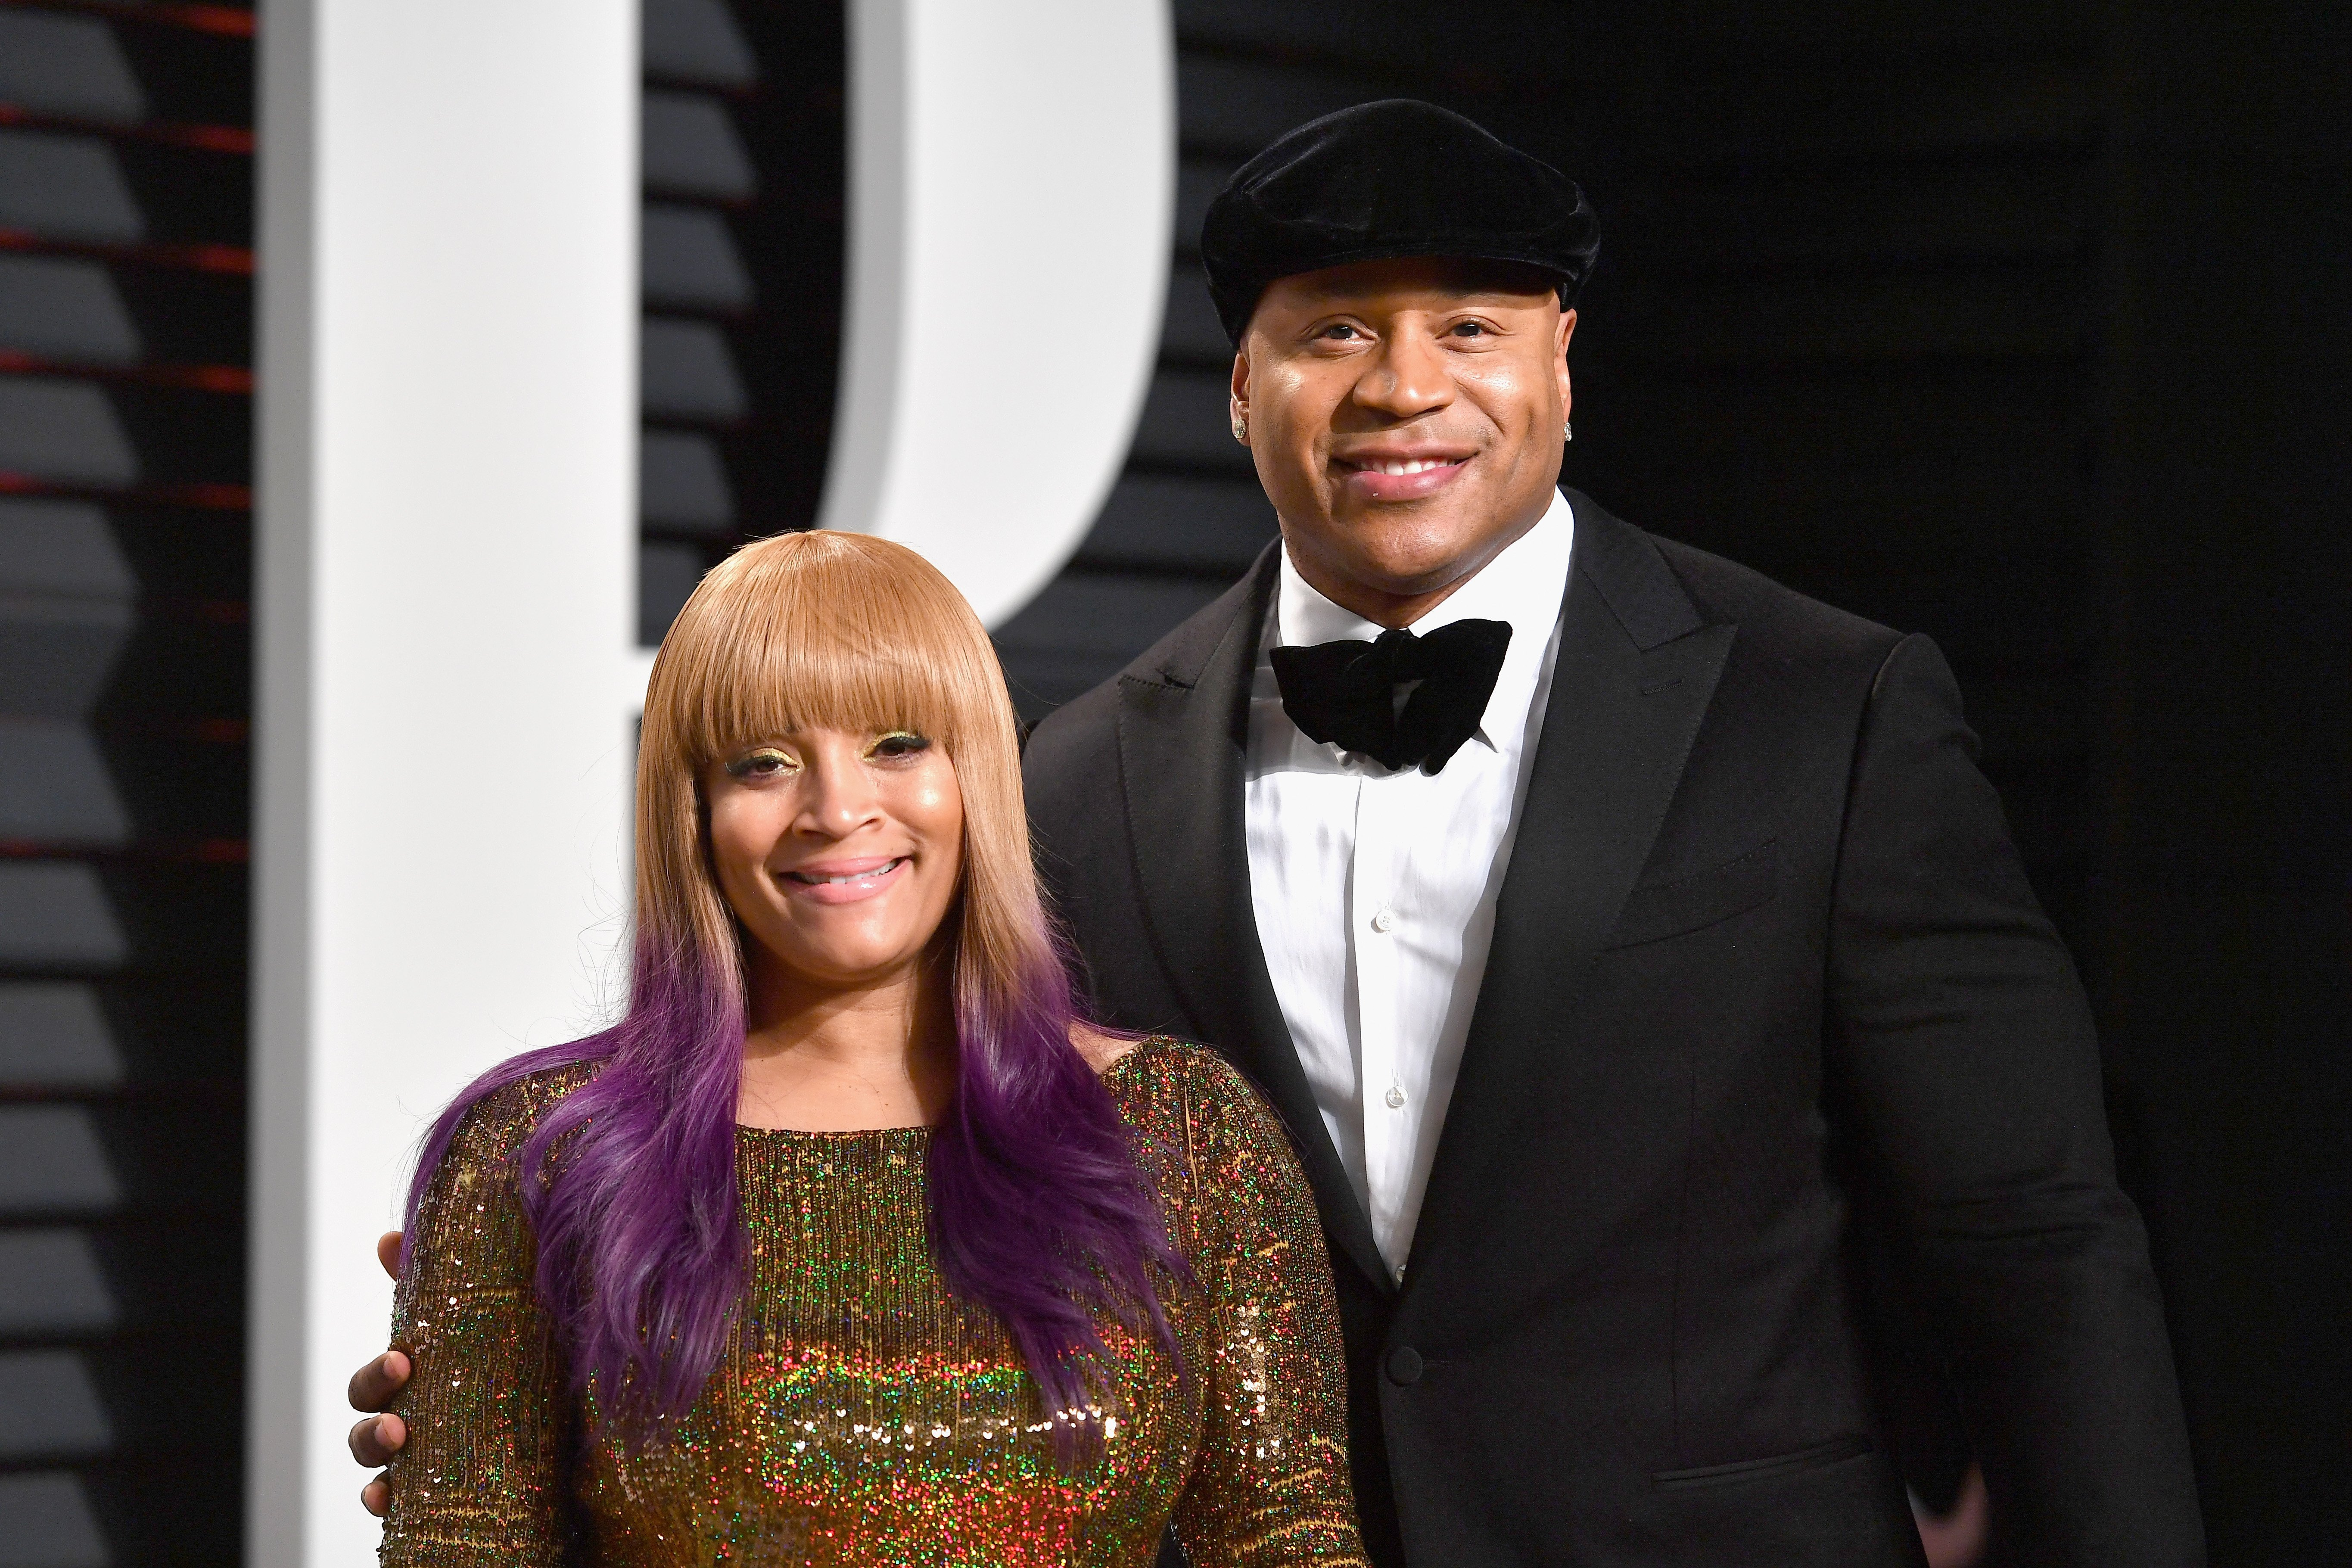 LL Cool J and Simone Smith attend the 2017 Vanity Fair Oscar Party on February 26, 2017. | Photo: GettyImages